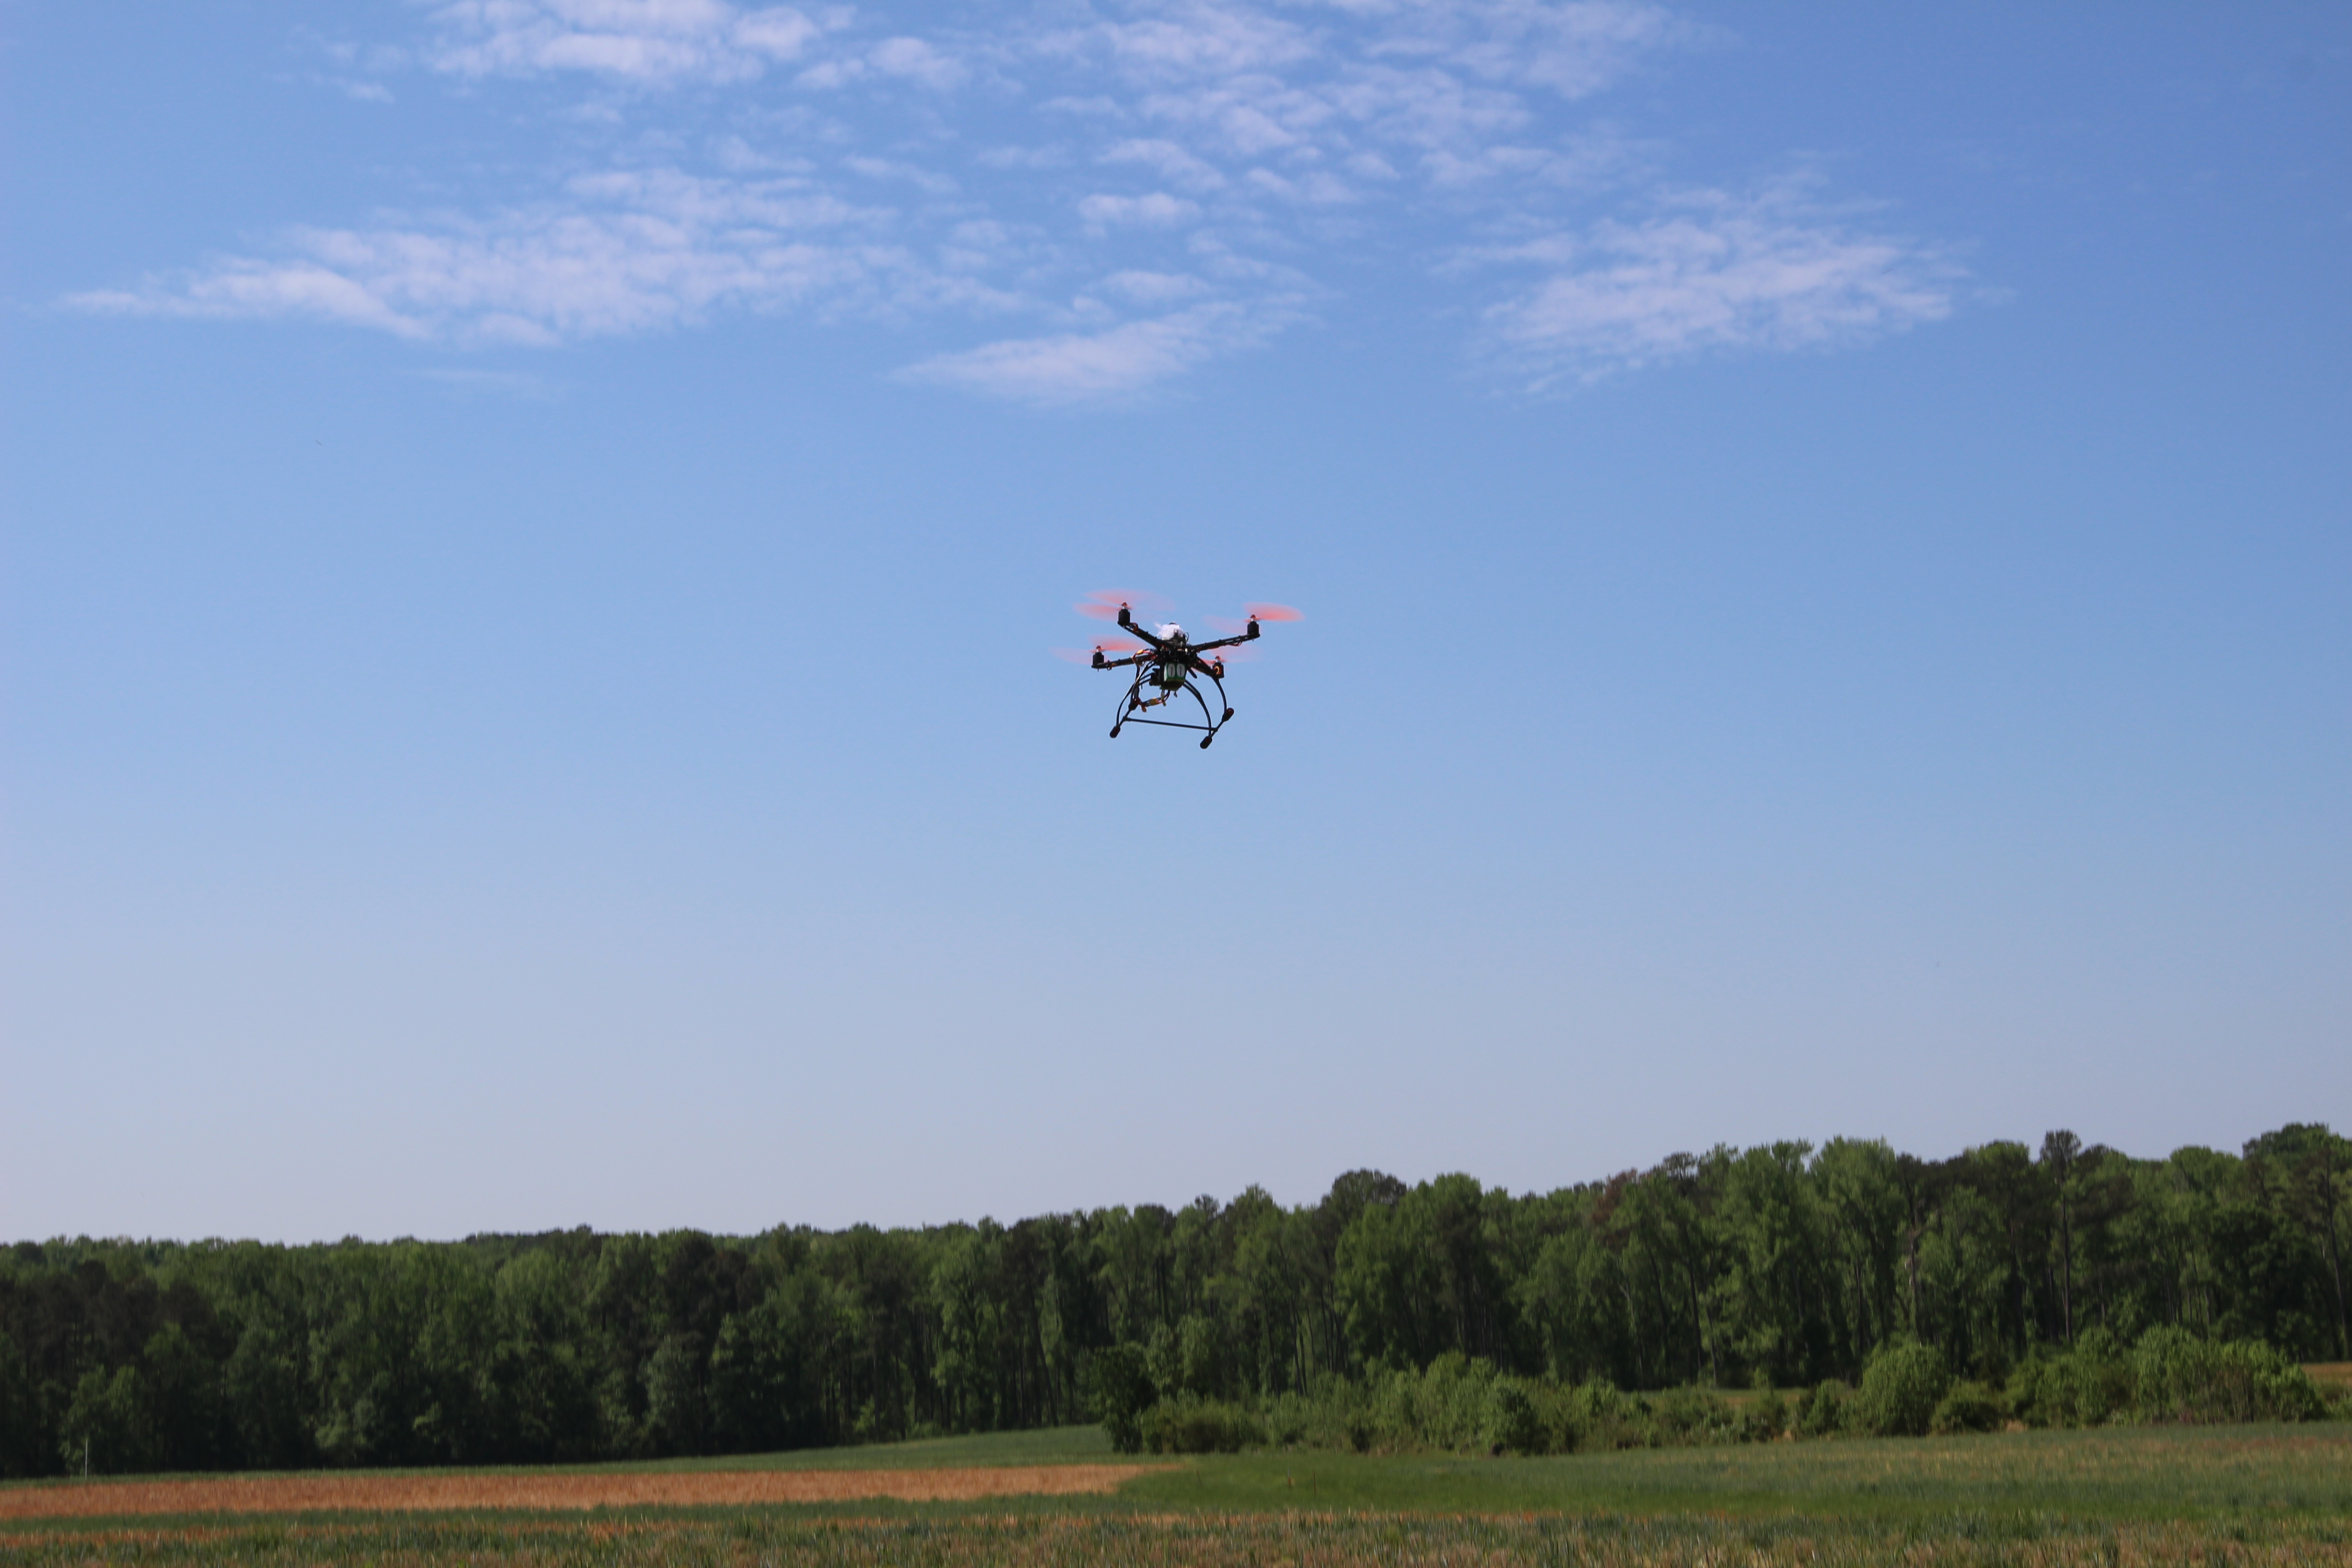 NCSU Student drone in flight